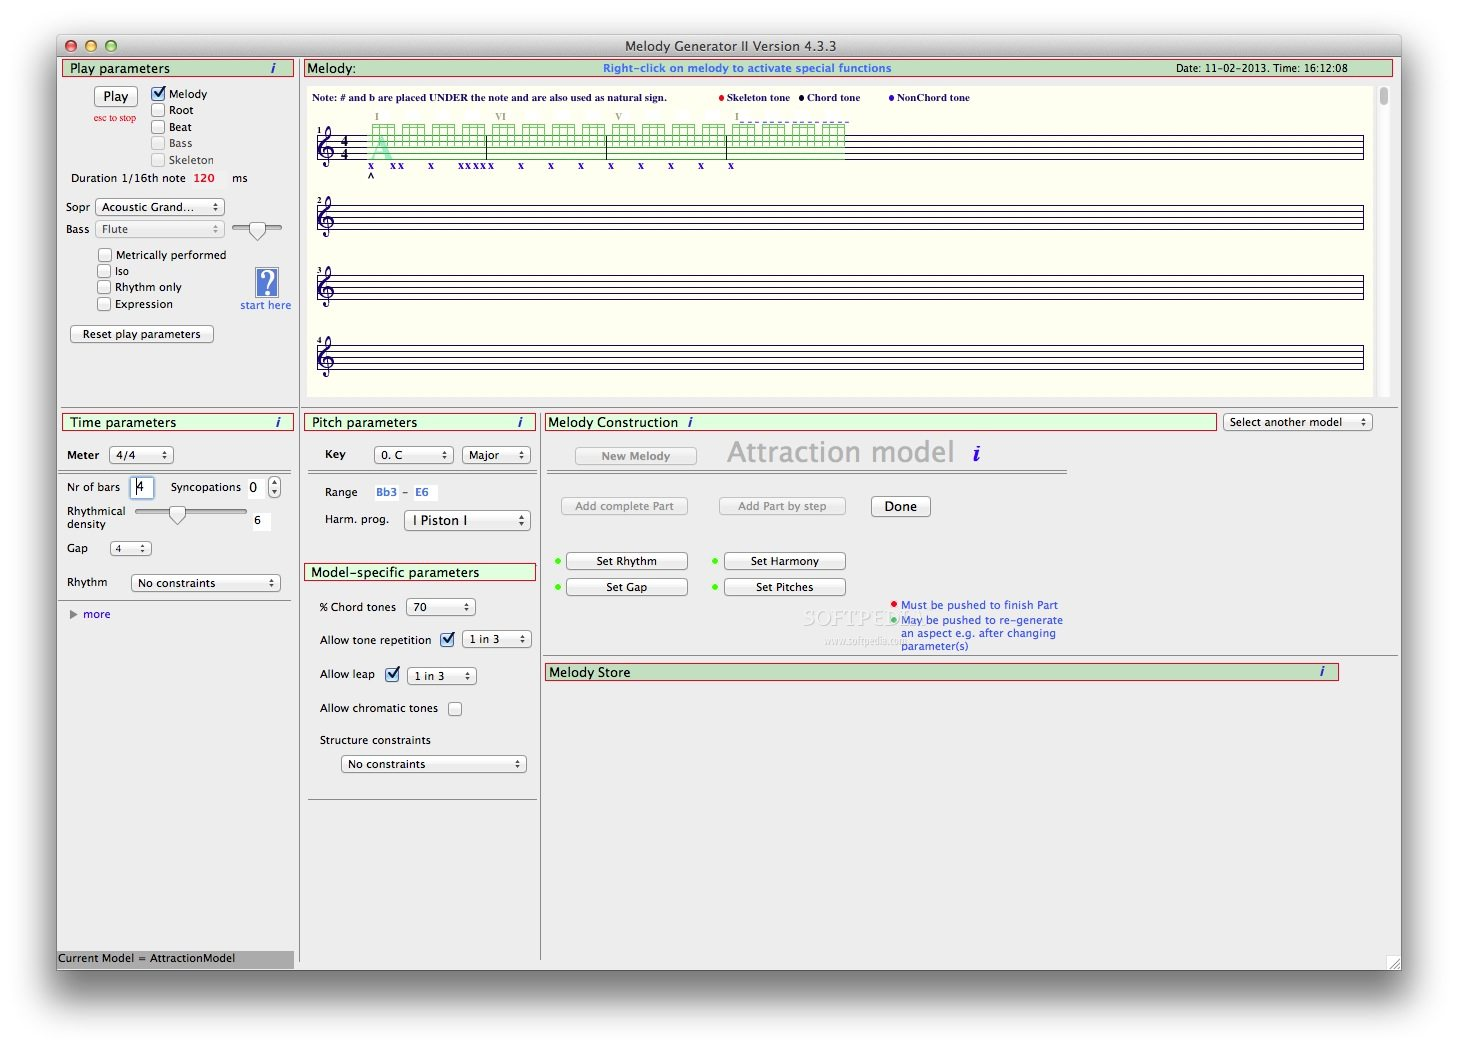 Melody Generator screenshot 1 - In the main window of the application you can choose the play and time parameters, as well as access multiple melody construction options.